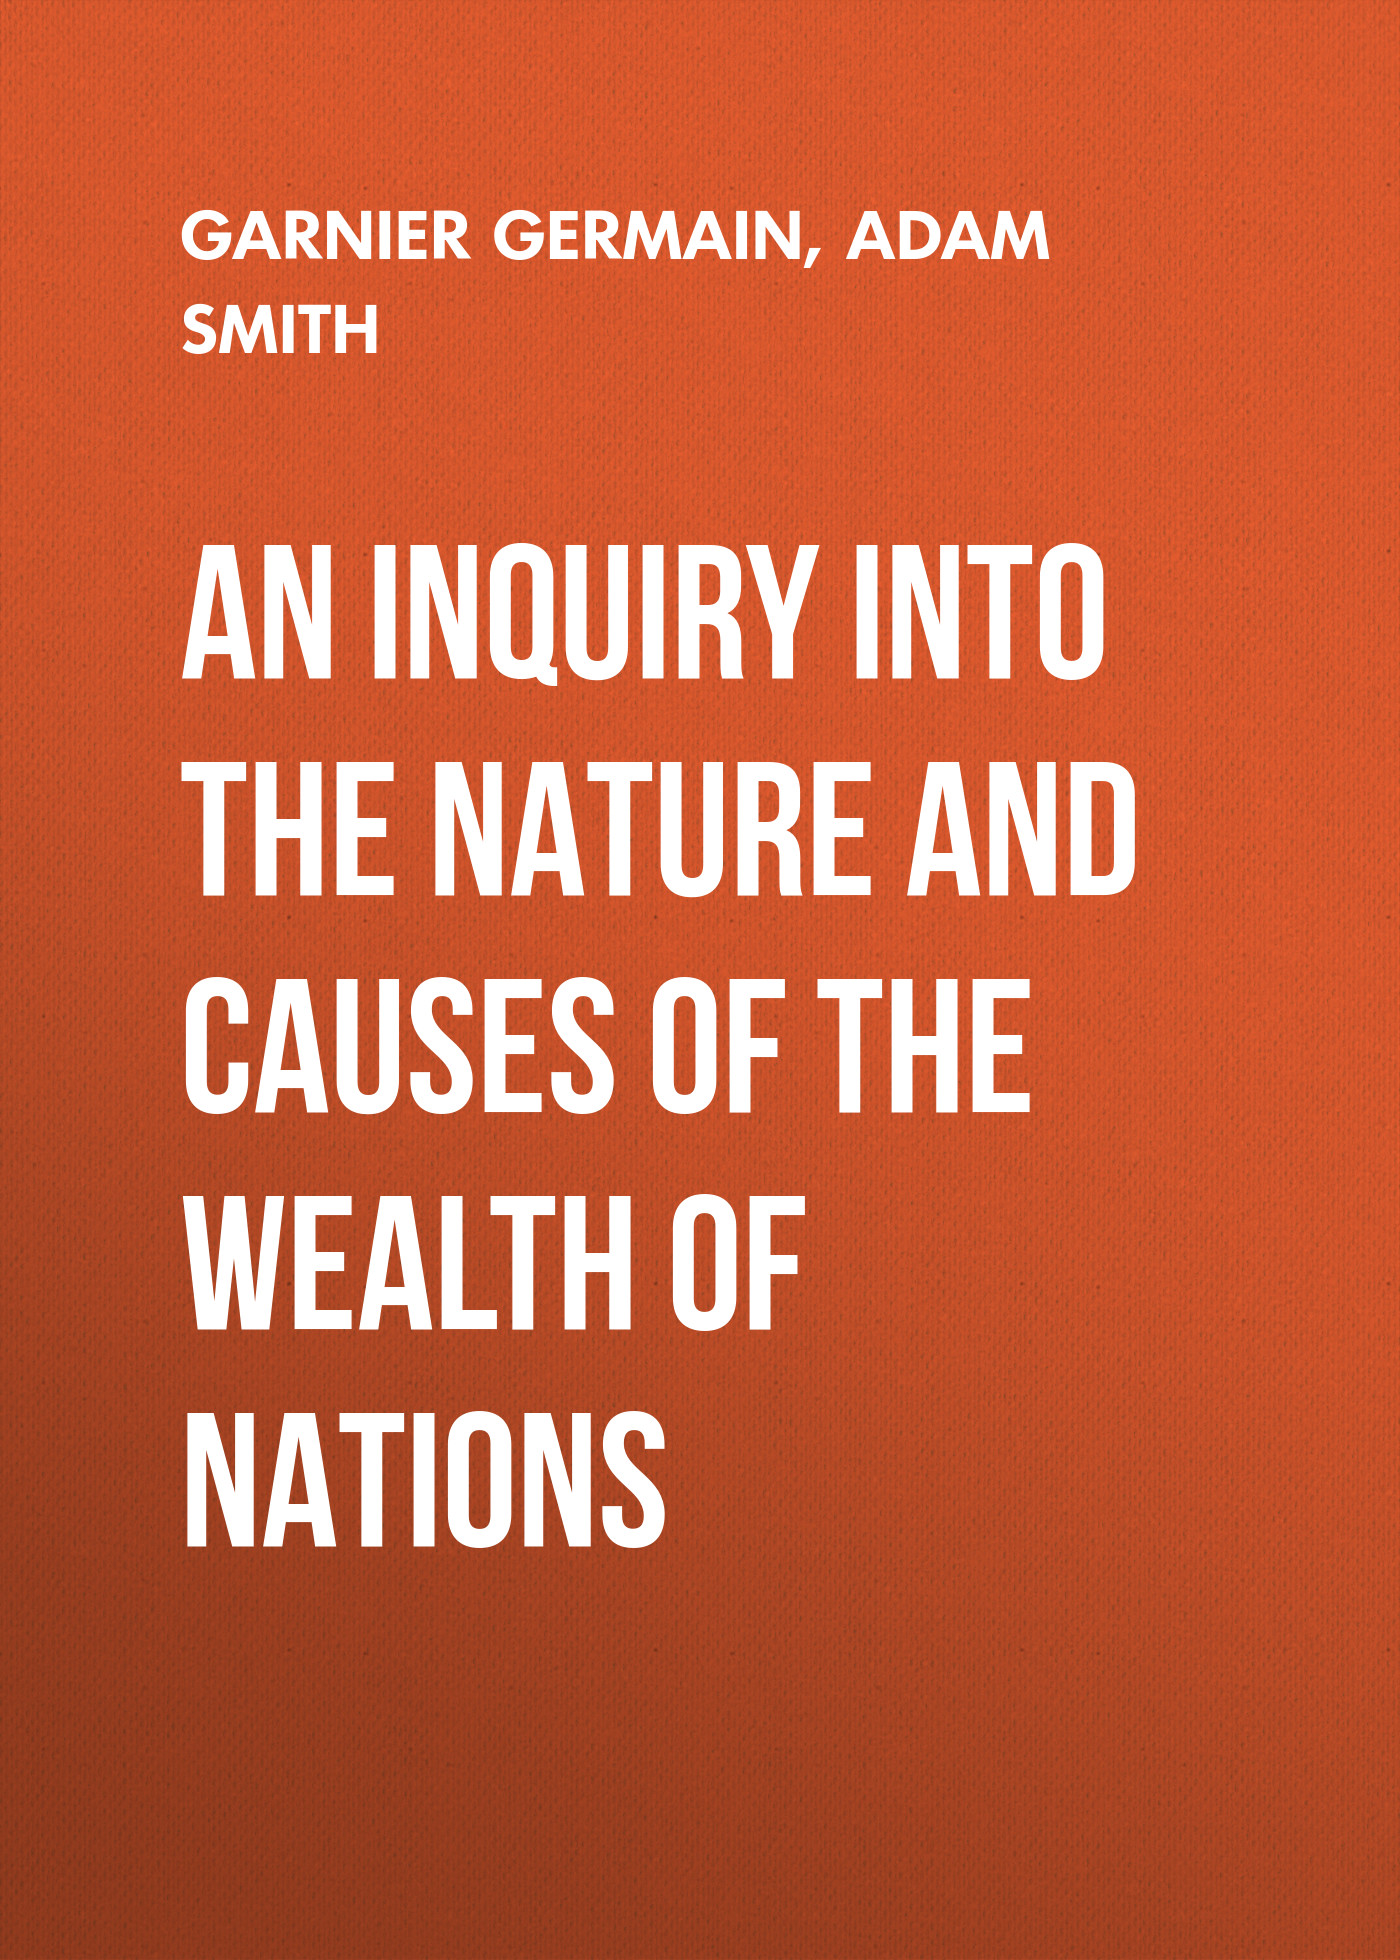 Adam Smith An Inquiry Into the Nature and Causes of the Wealth of Nations бит makita ph3 х25мм 3шт p 38598